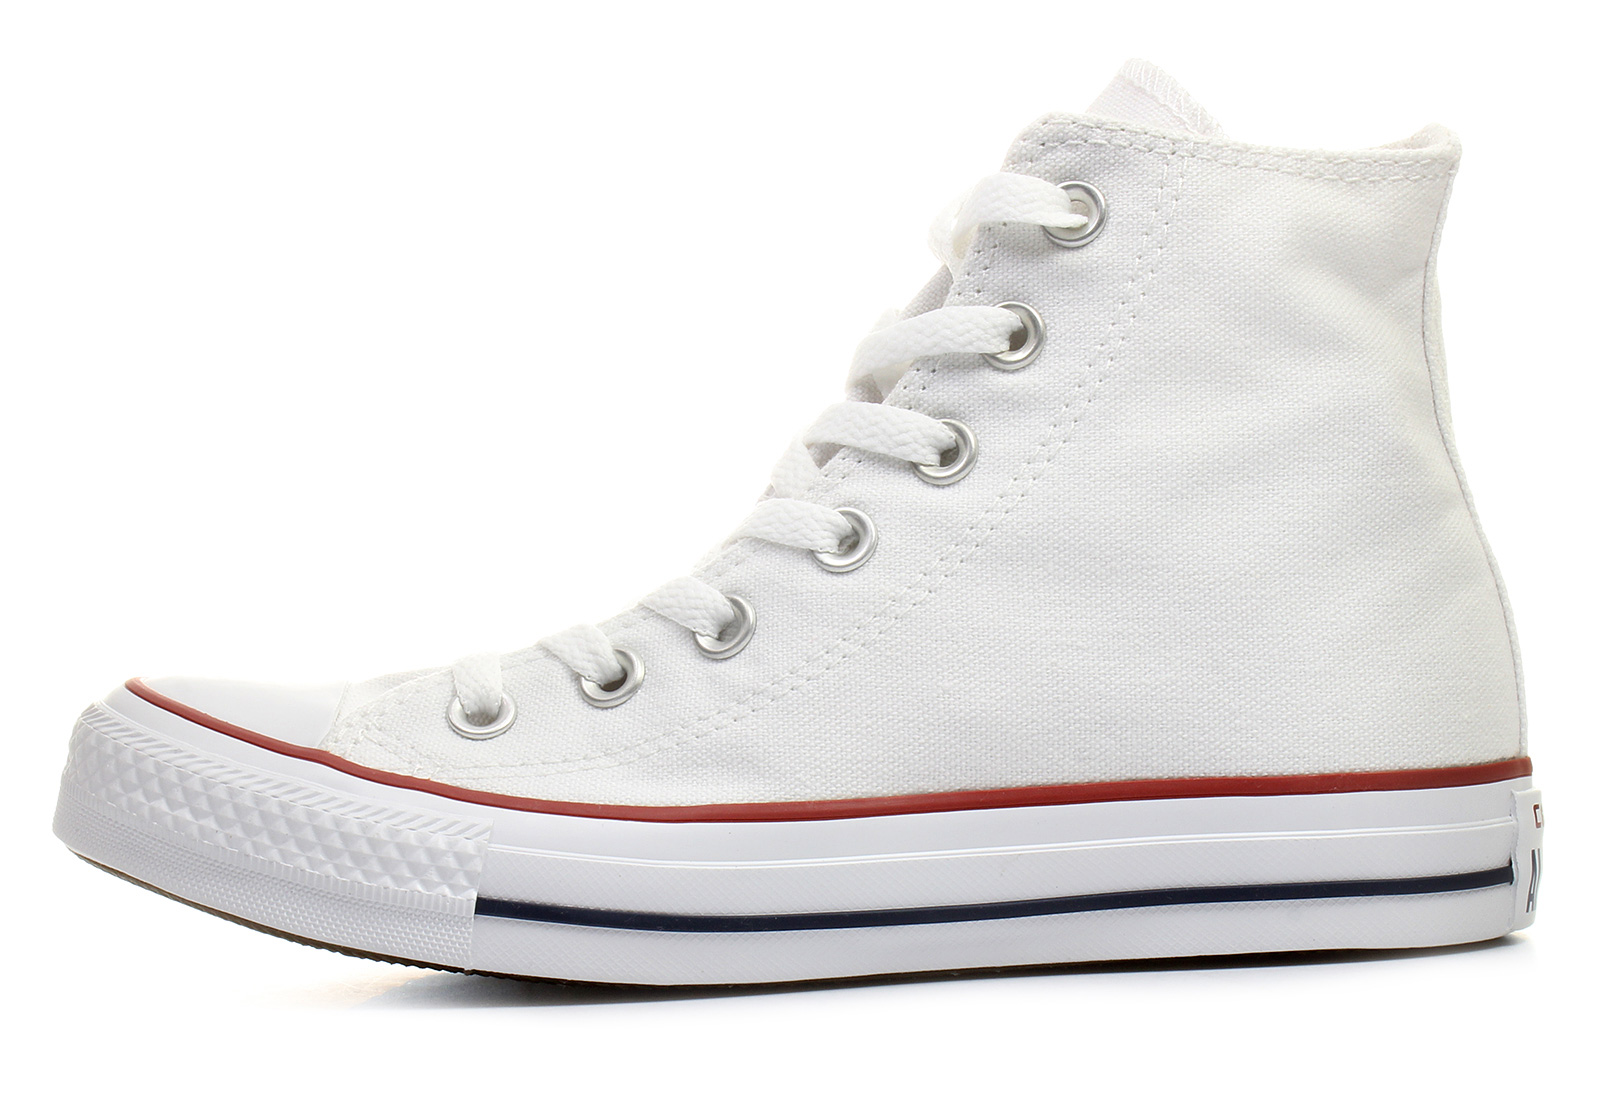 0677d62f09b0 Converse Tenisi - Ct As Core Hi - M7650C - Office Shoes Romania